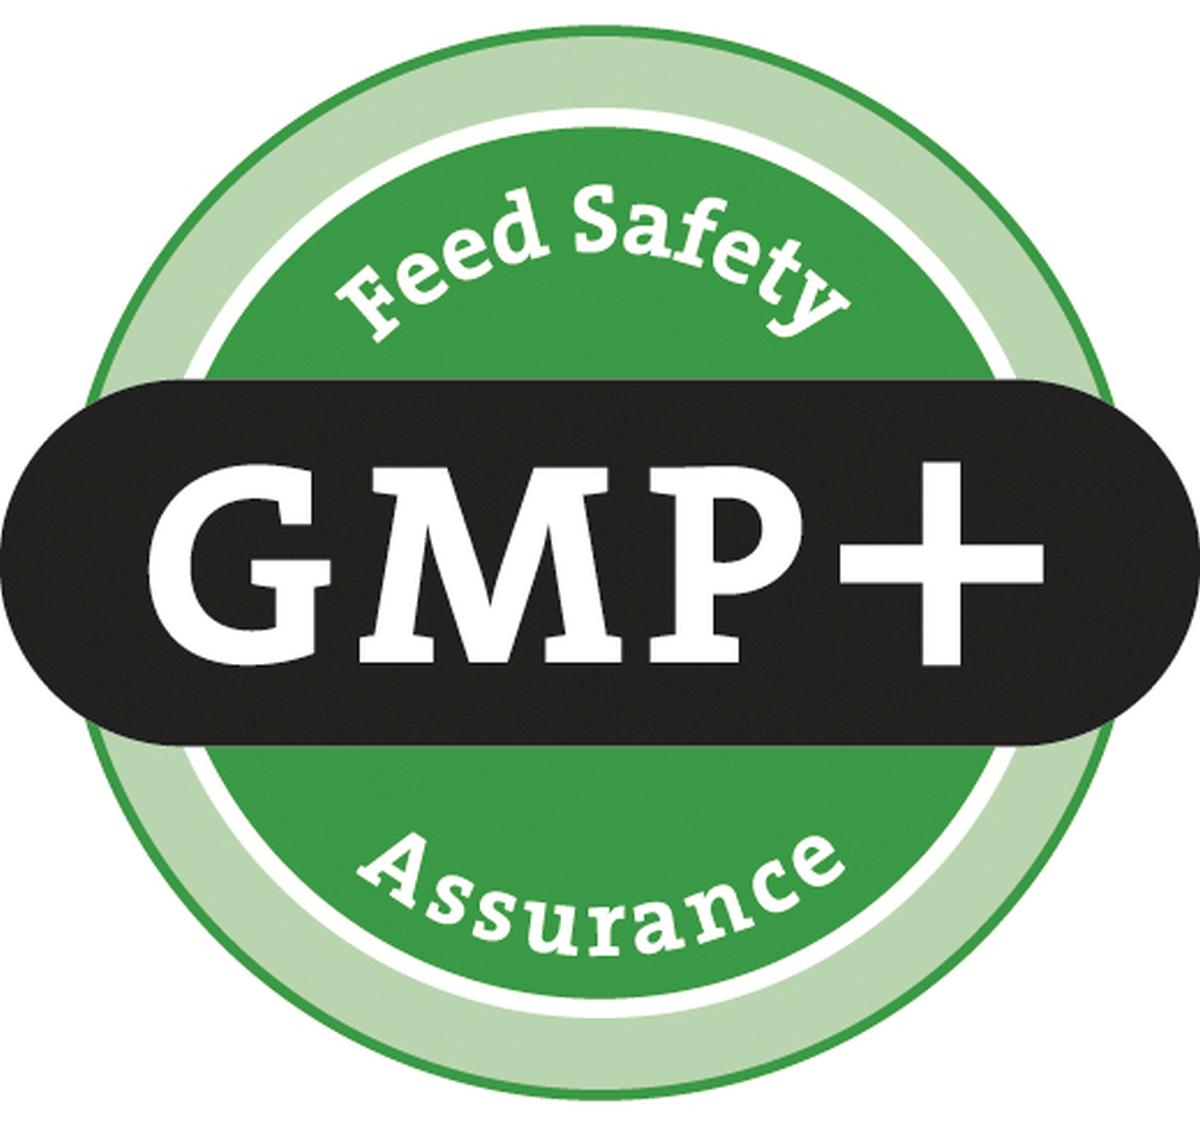 Gmp Feed Safety Peter Greven